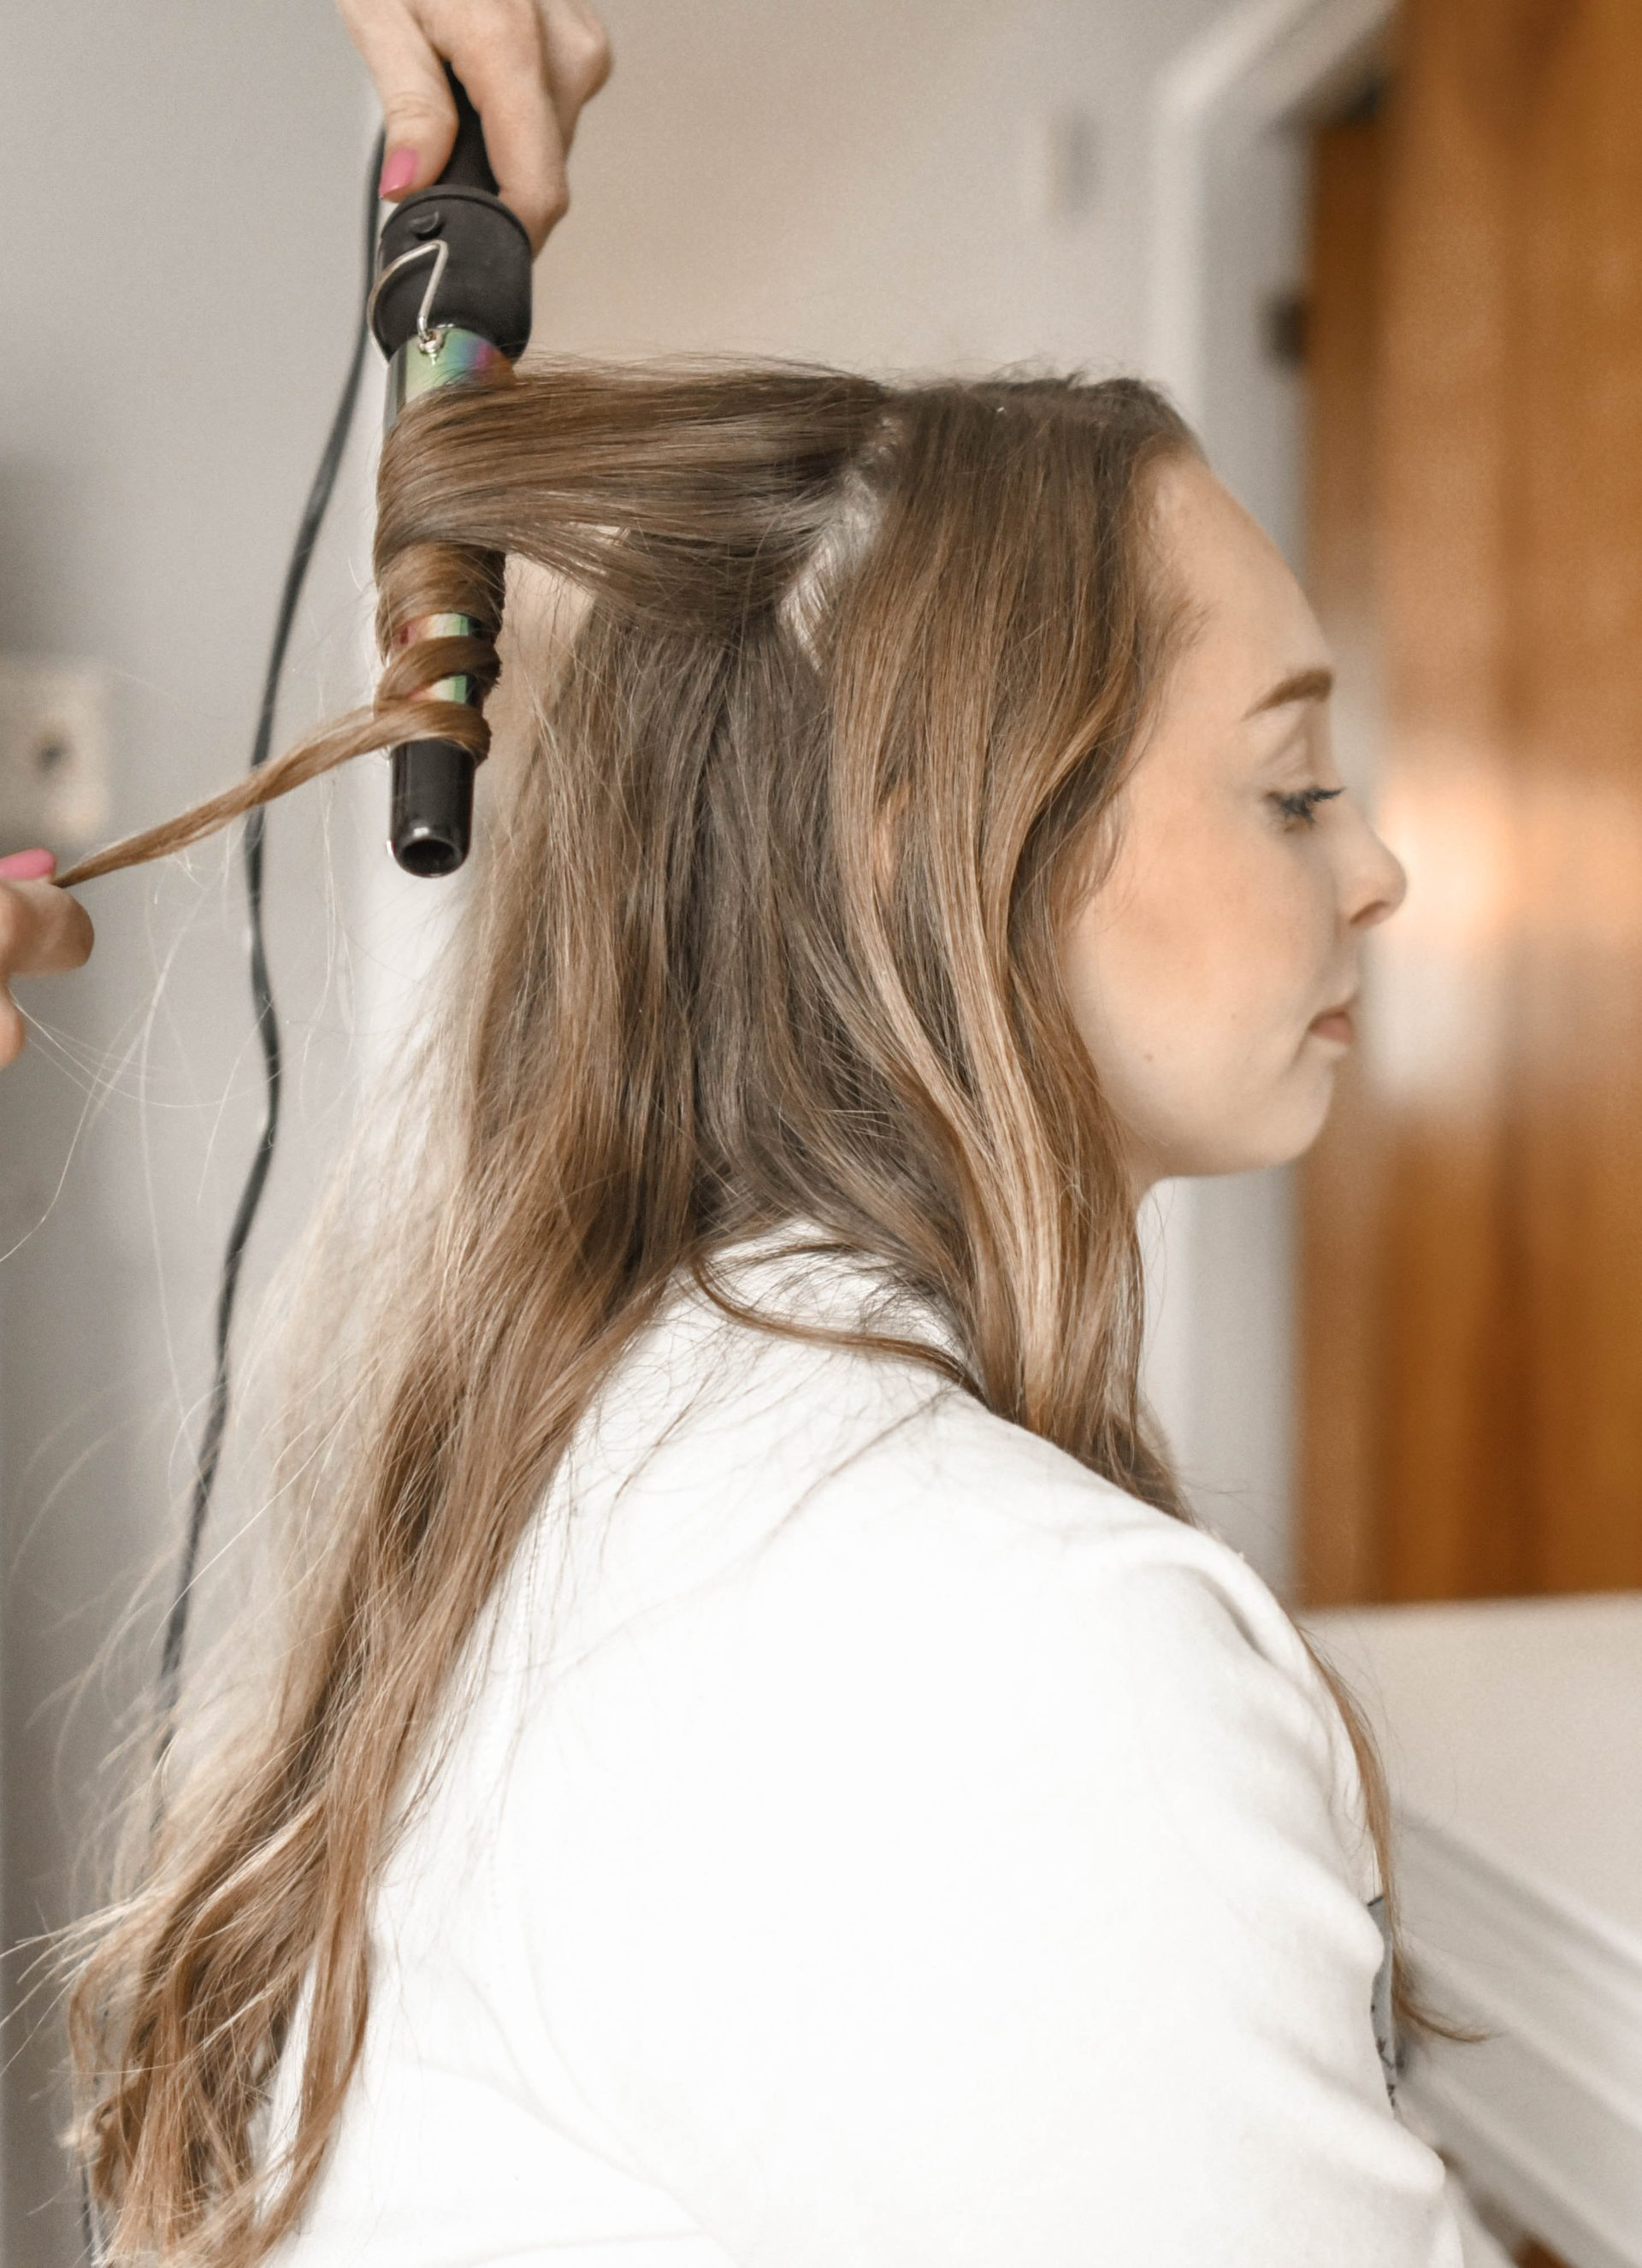 A person is curling the hair of the blonde woman sitting in front of a mirror